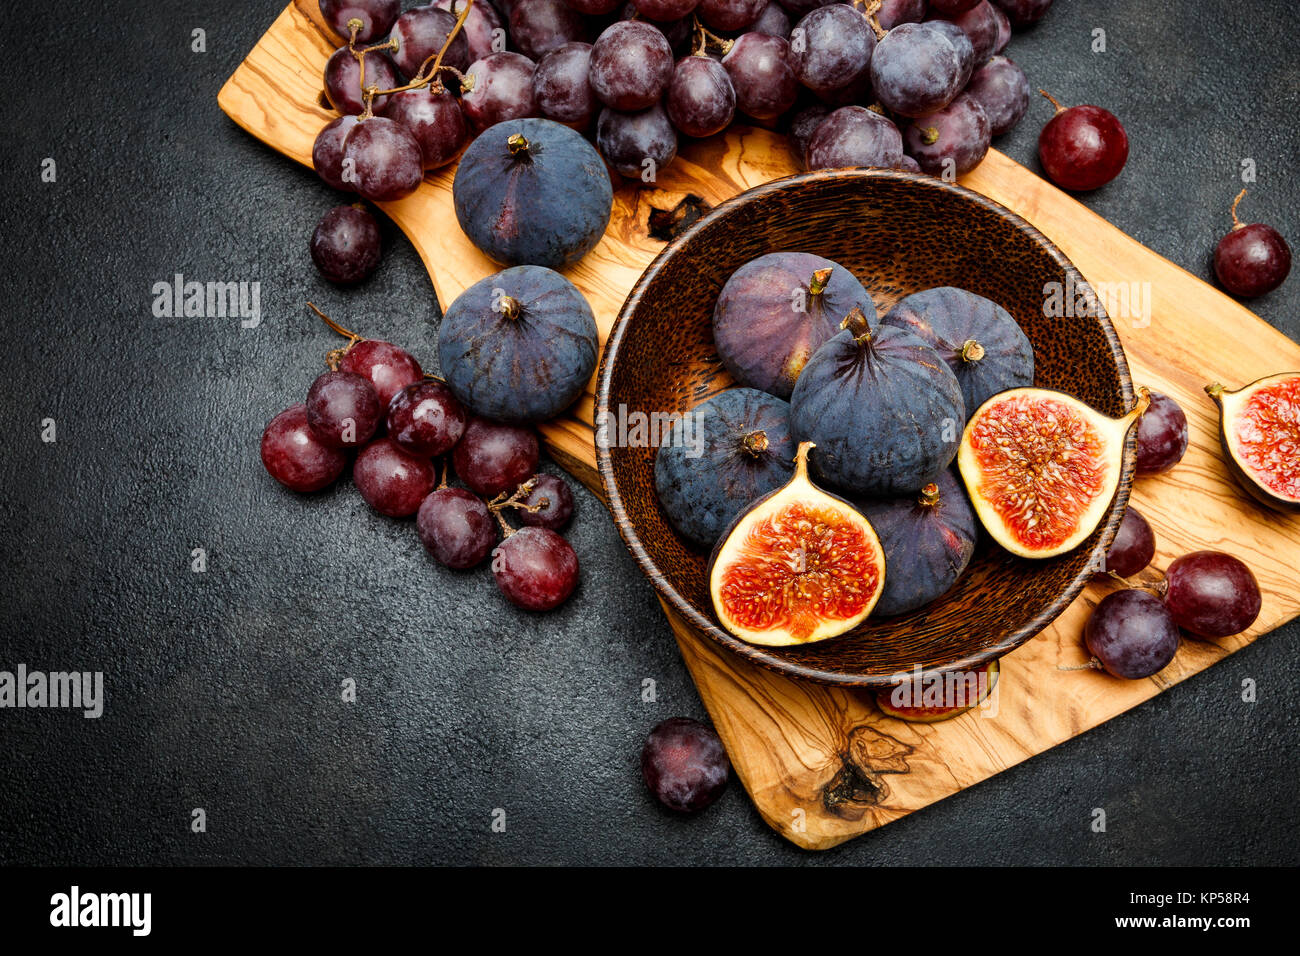 Ripe Grapes and Figs on dark concrete background - Stock Image